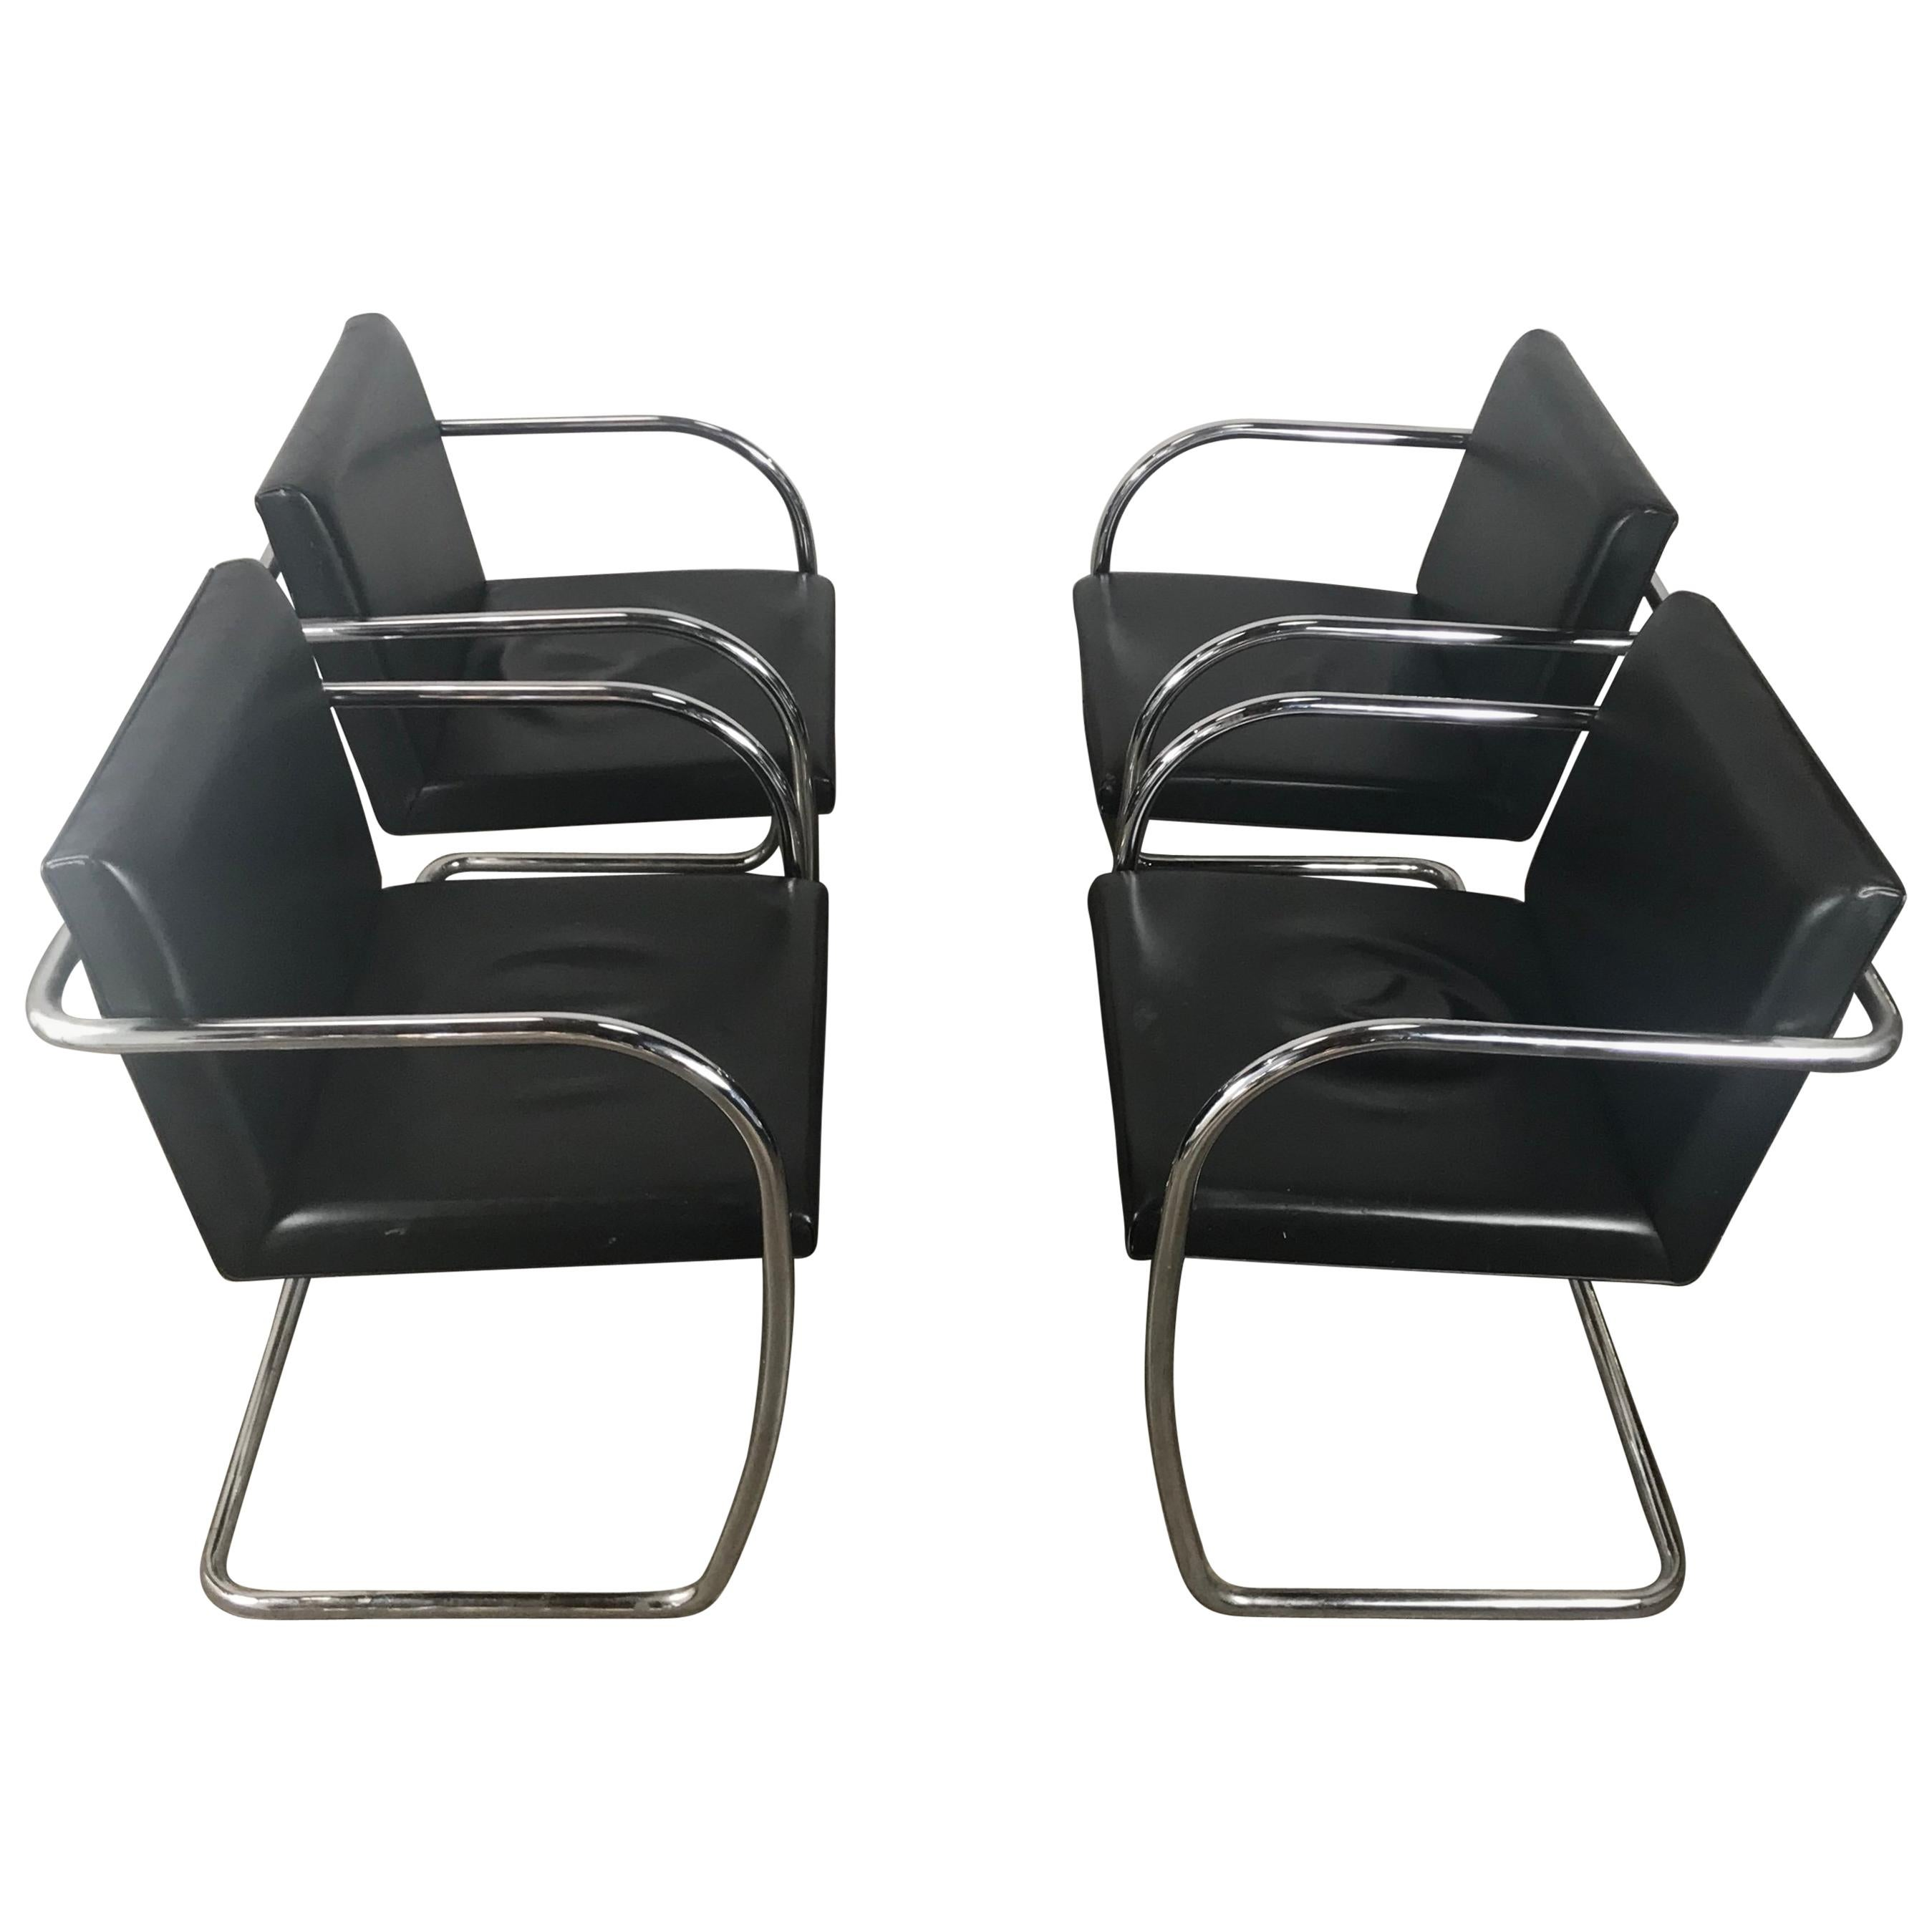 """Set of 4 Black Leather and Chrome """"Brno"""" Armchairs"""